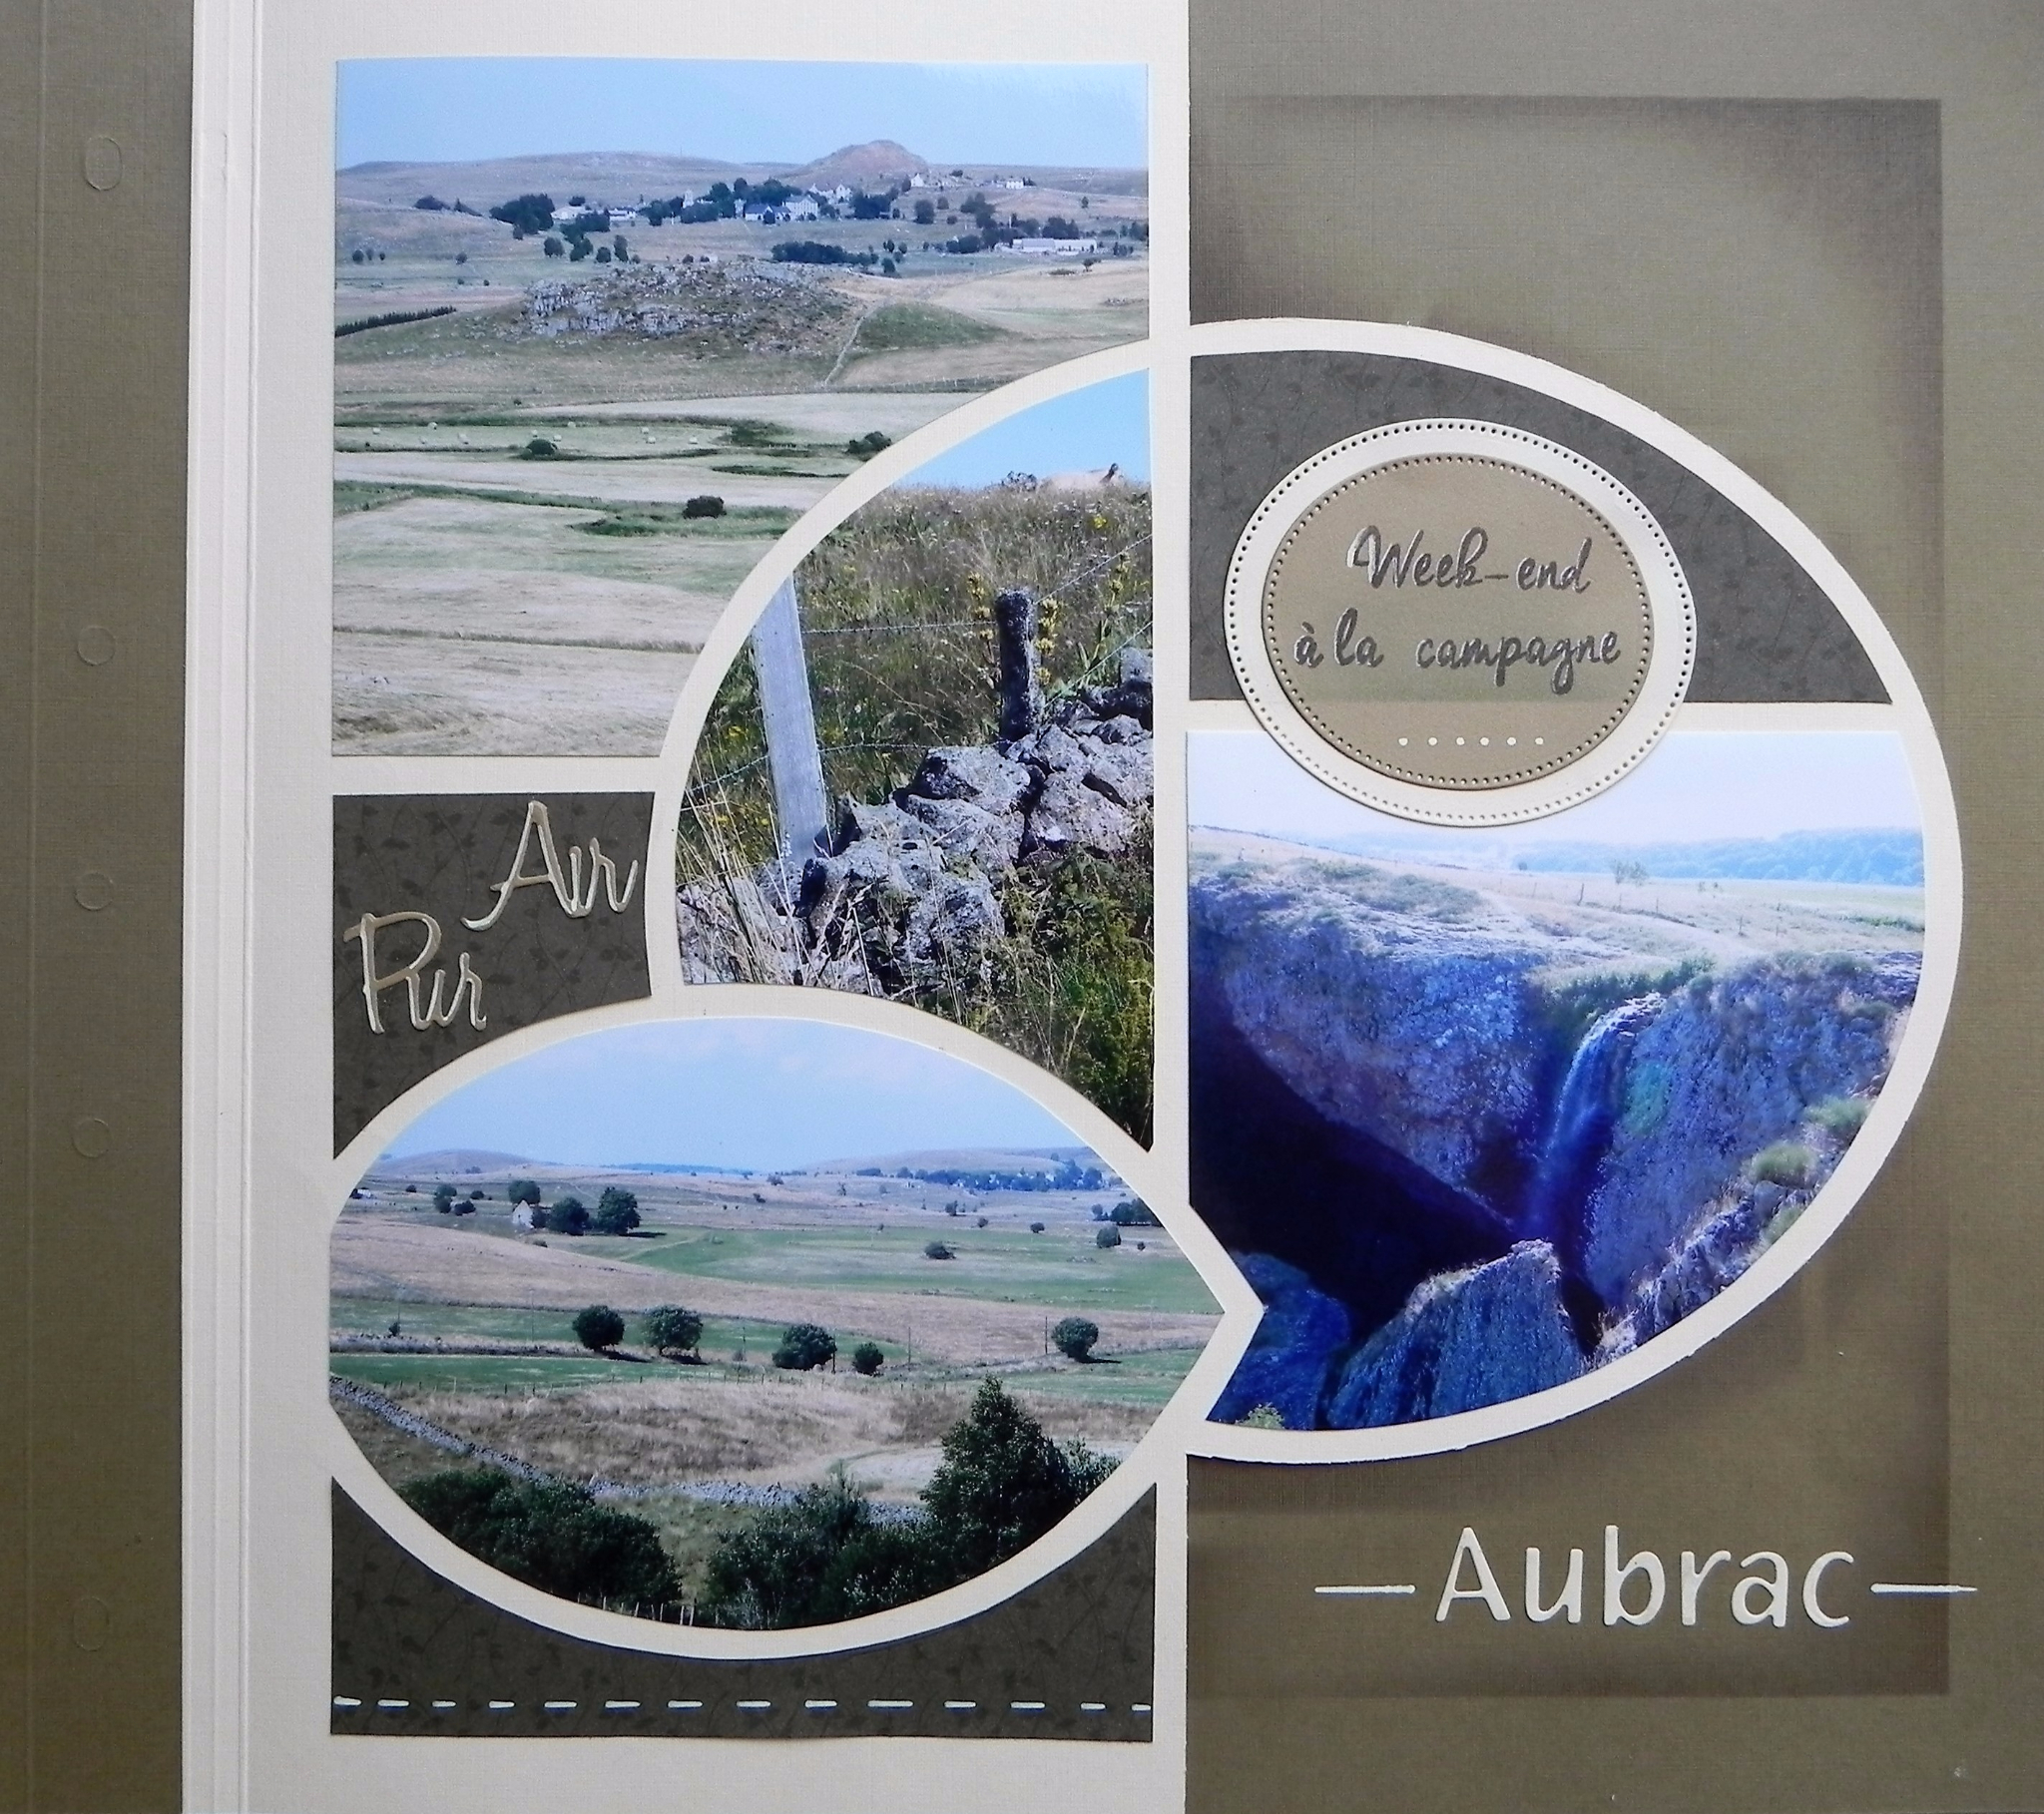 Un week- end sur l'Aubrac